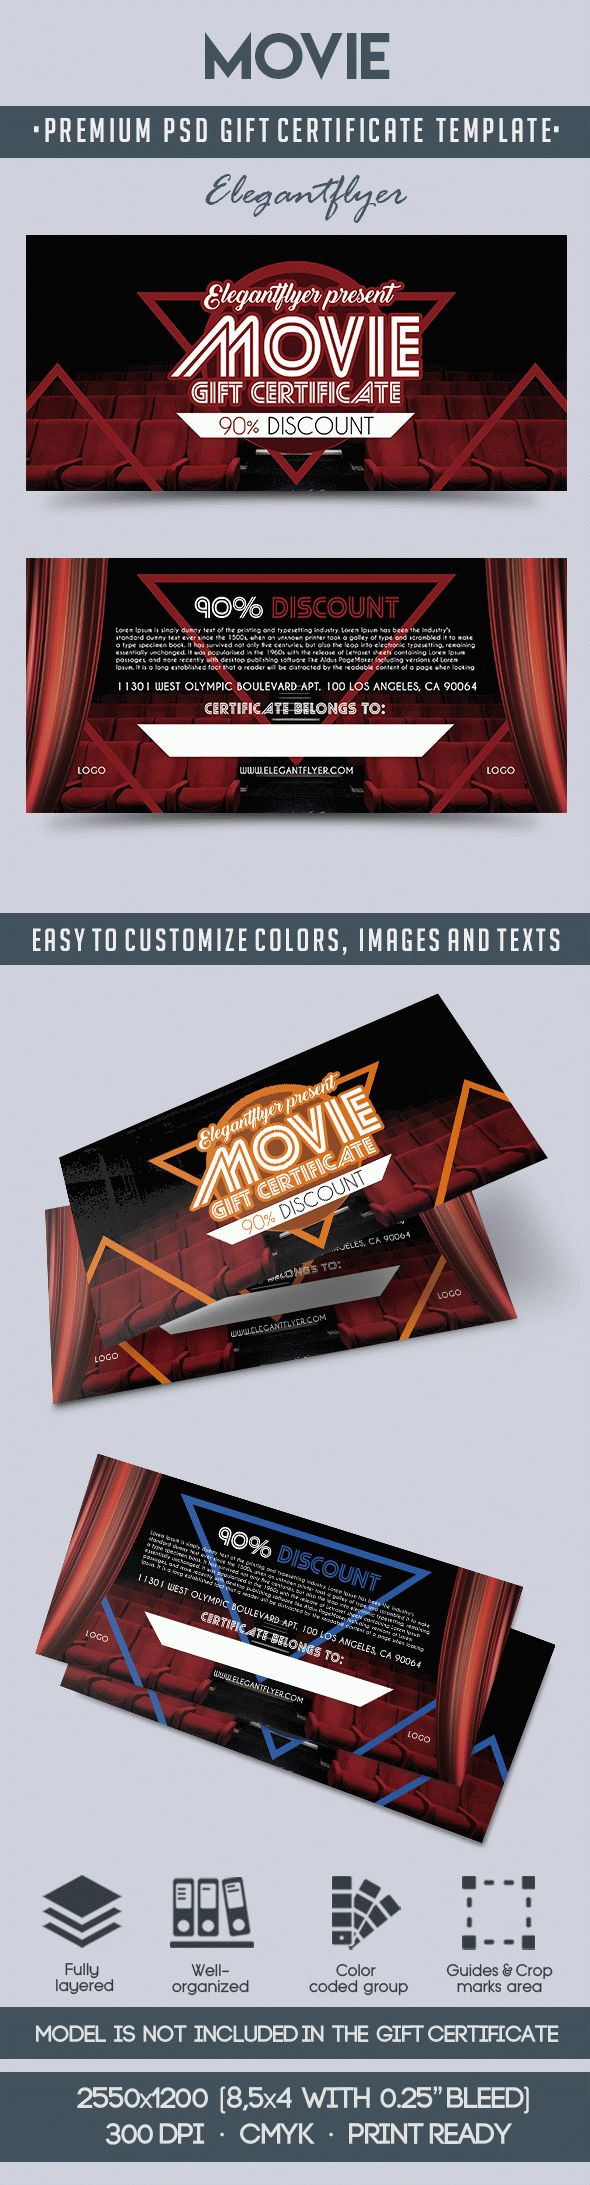 Gift Certificate For Movie By Elegantflyer